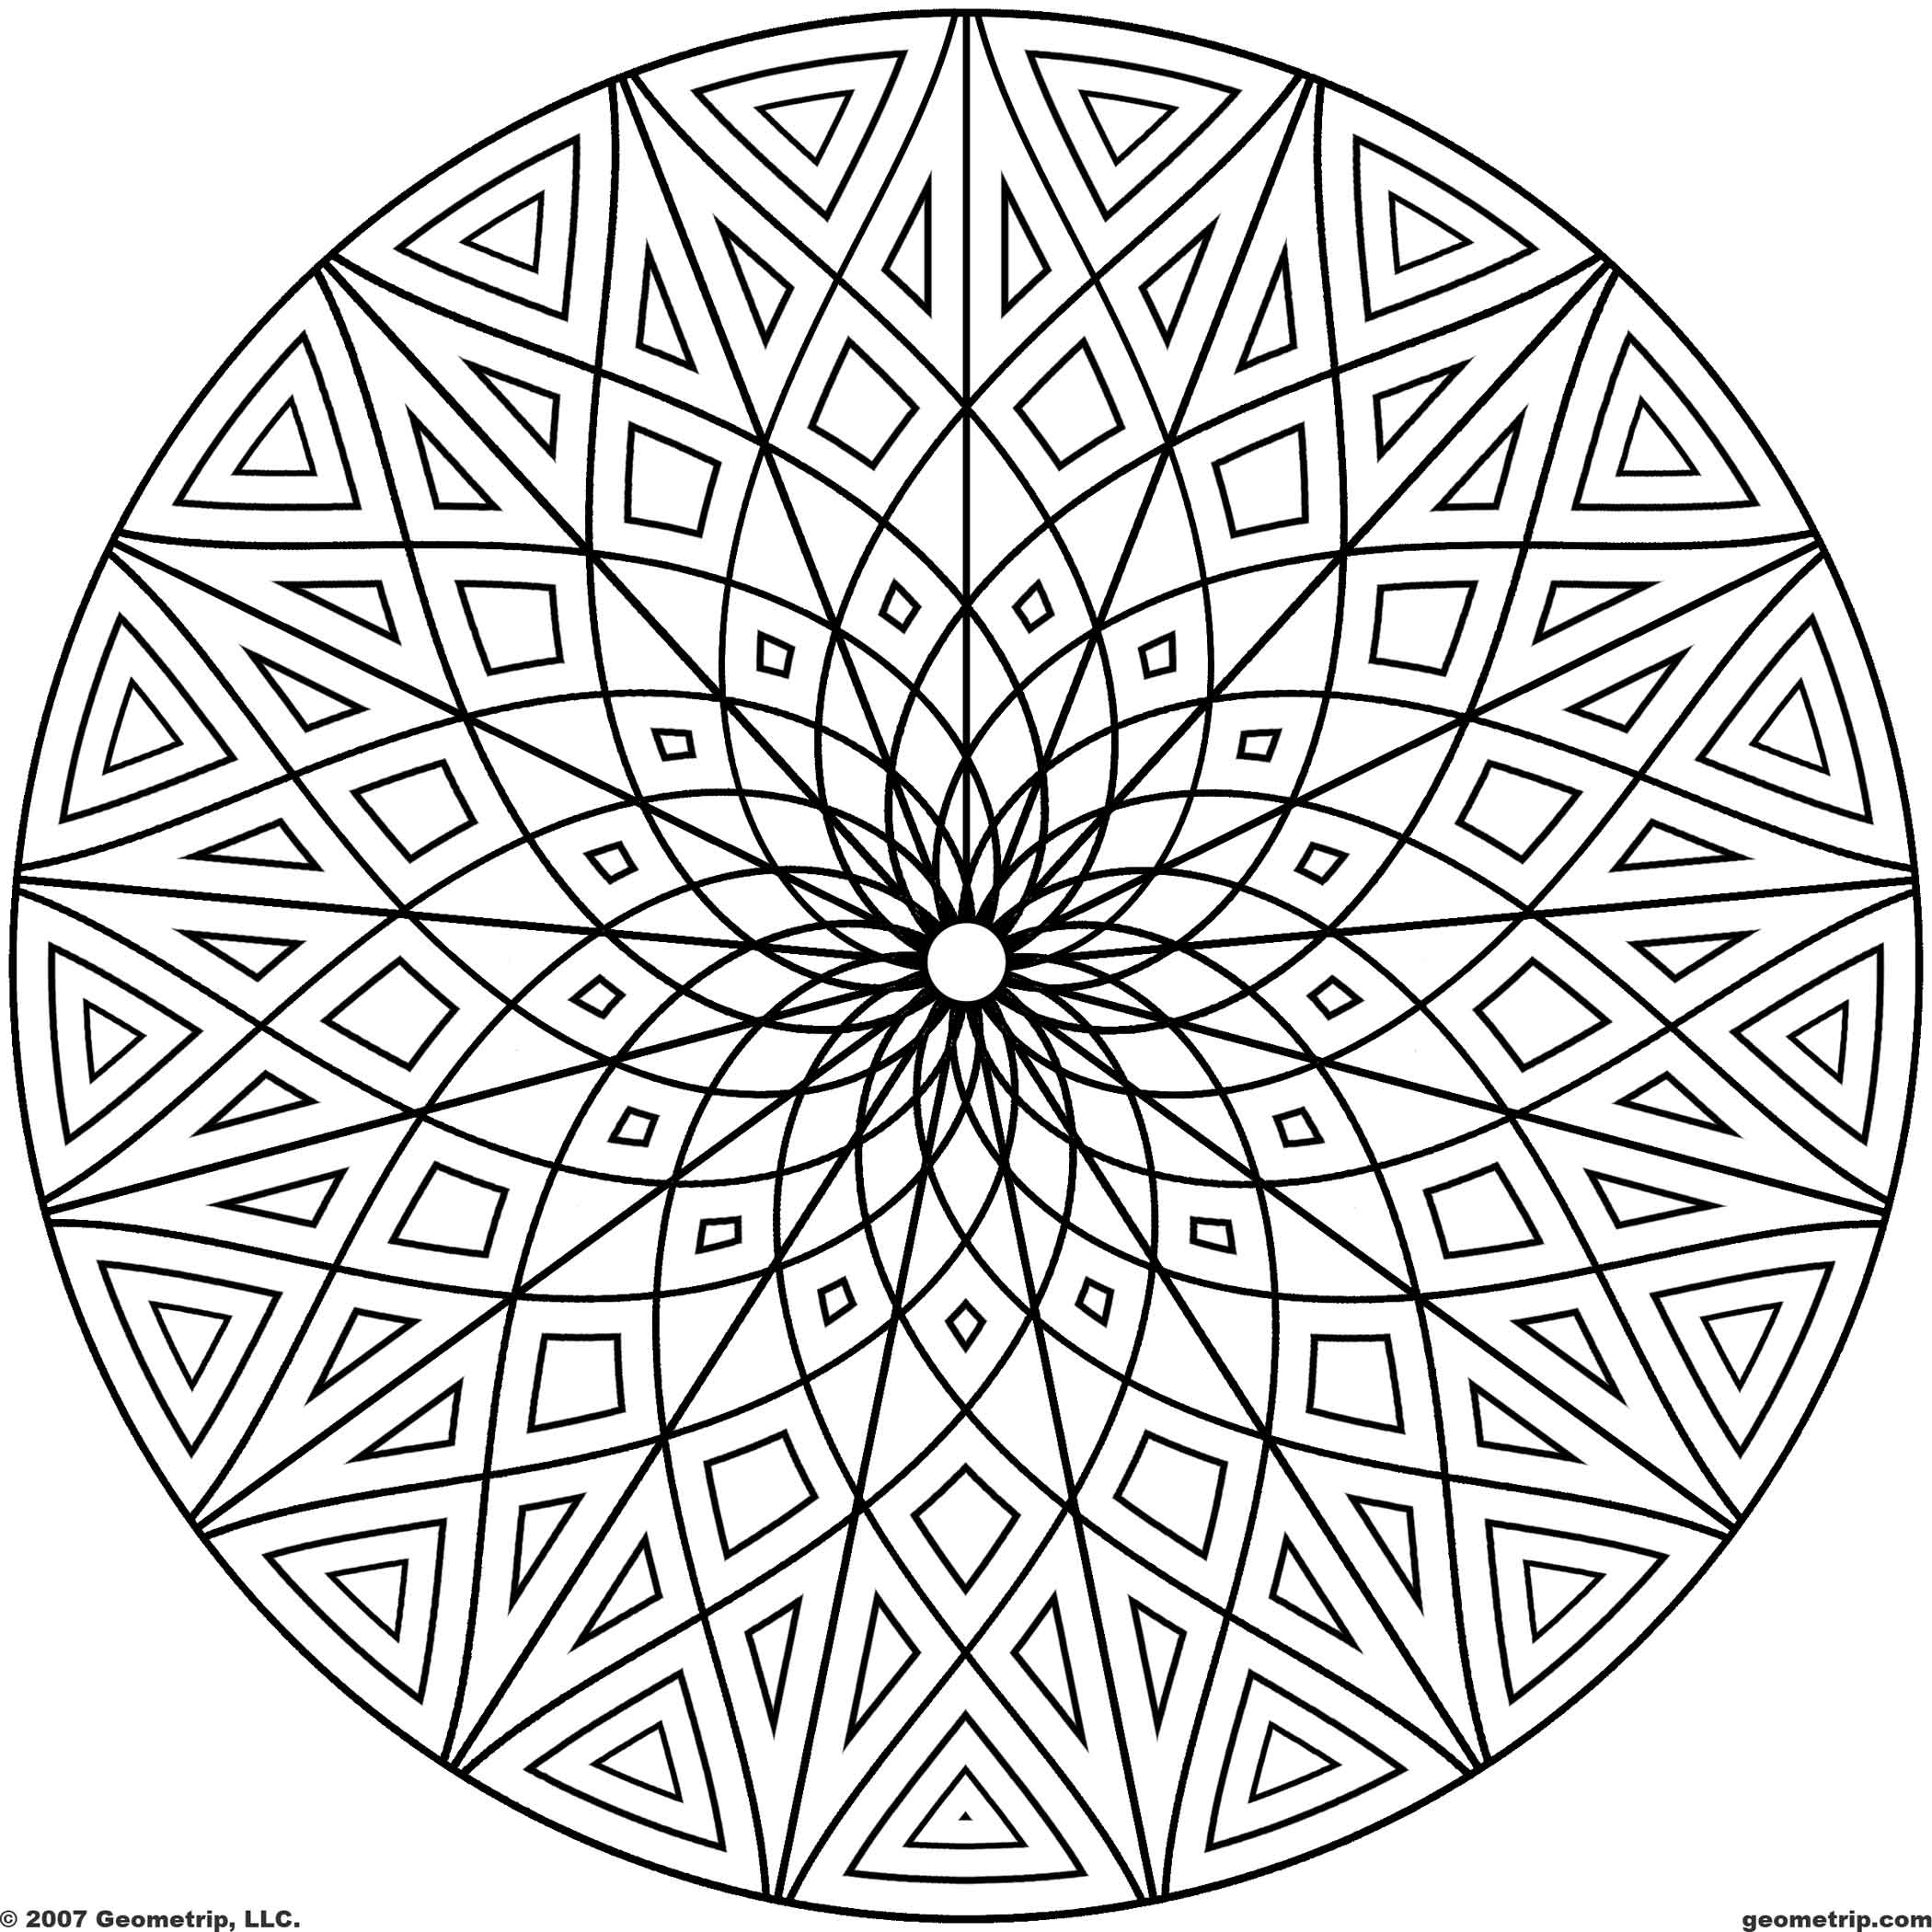 It's just an image of Nifty Cool Printable Coloring Pages